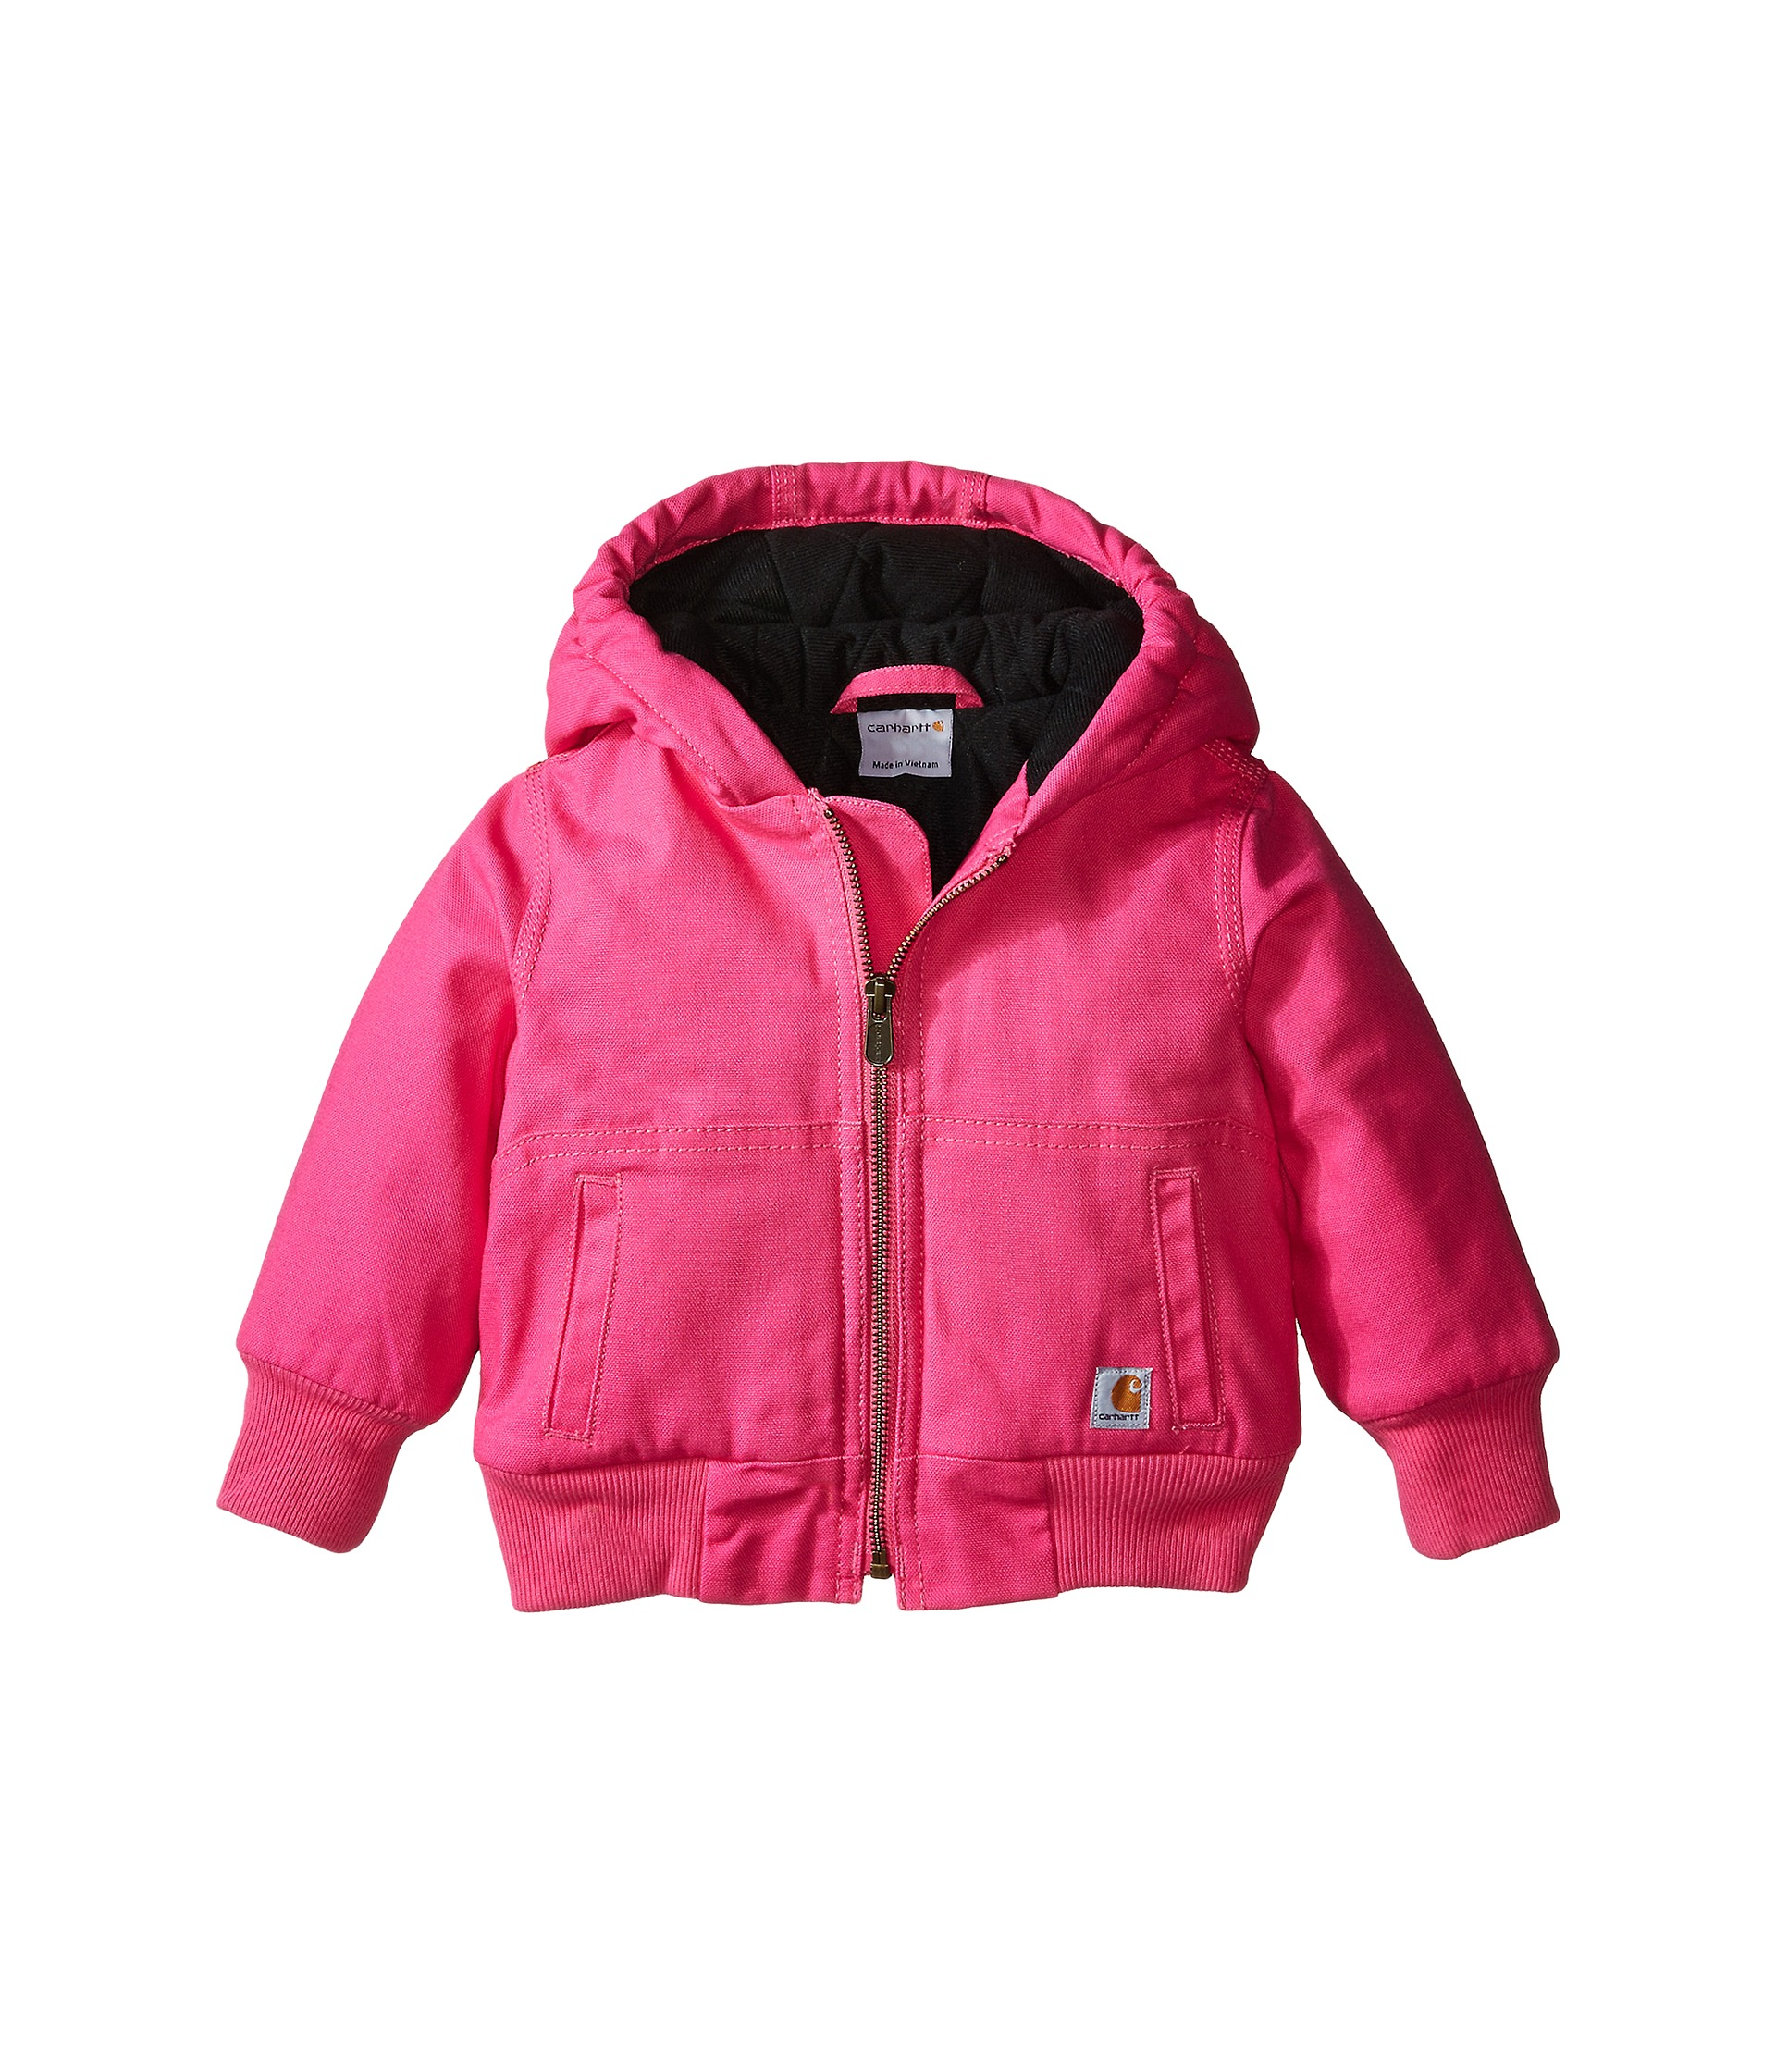 Carhartt Kids Wildwood Jacket Infant at Zappos